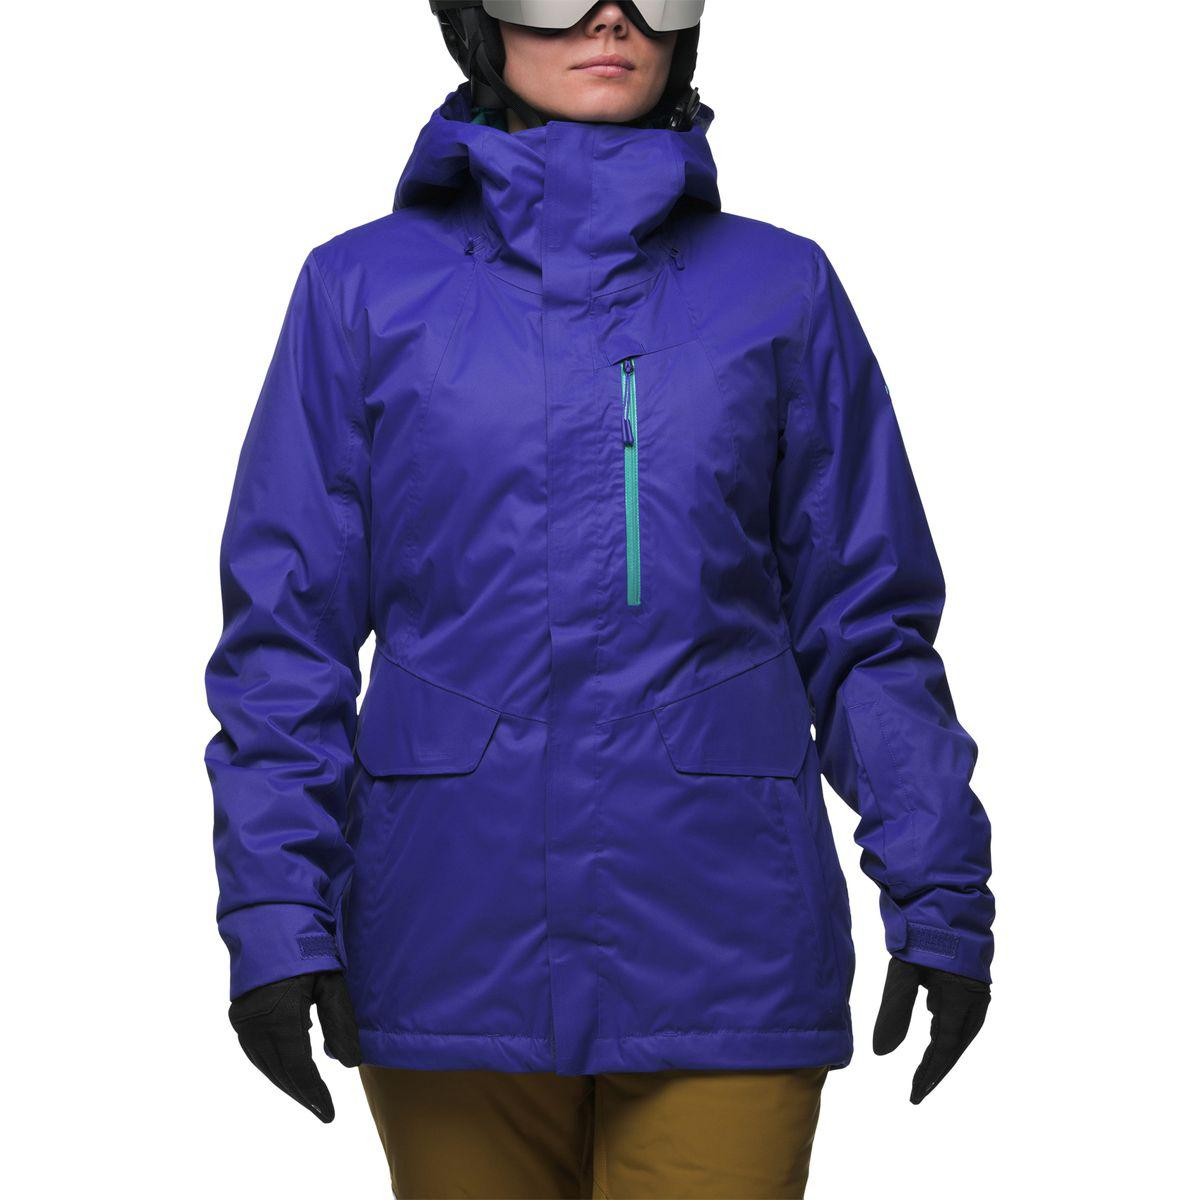 ... jacket moosejaw 42547 9a9ec coupon code for lyst the north face  thermoball snow triclimate hooded 3 in 1 4b573 5ddad ... 5b3970d88